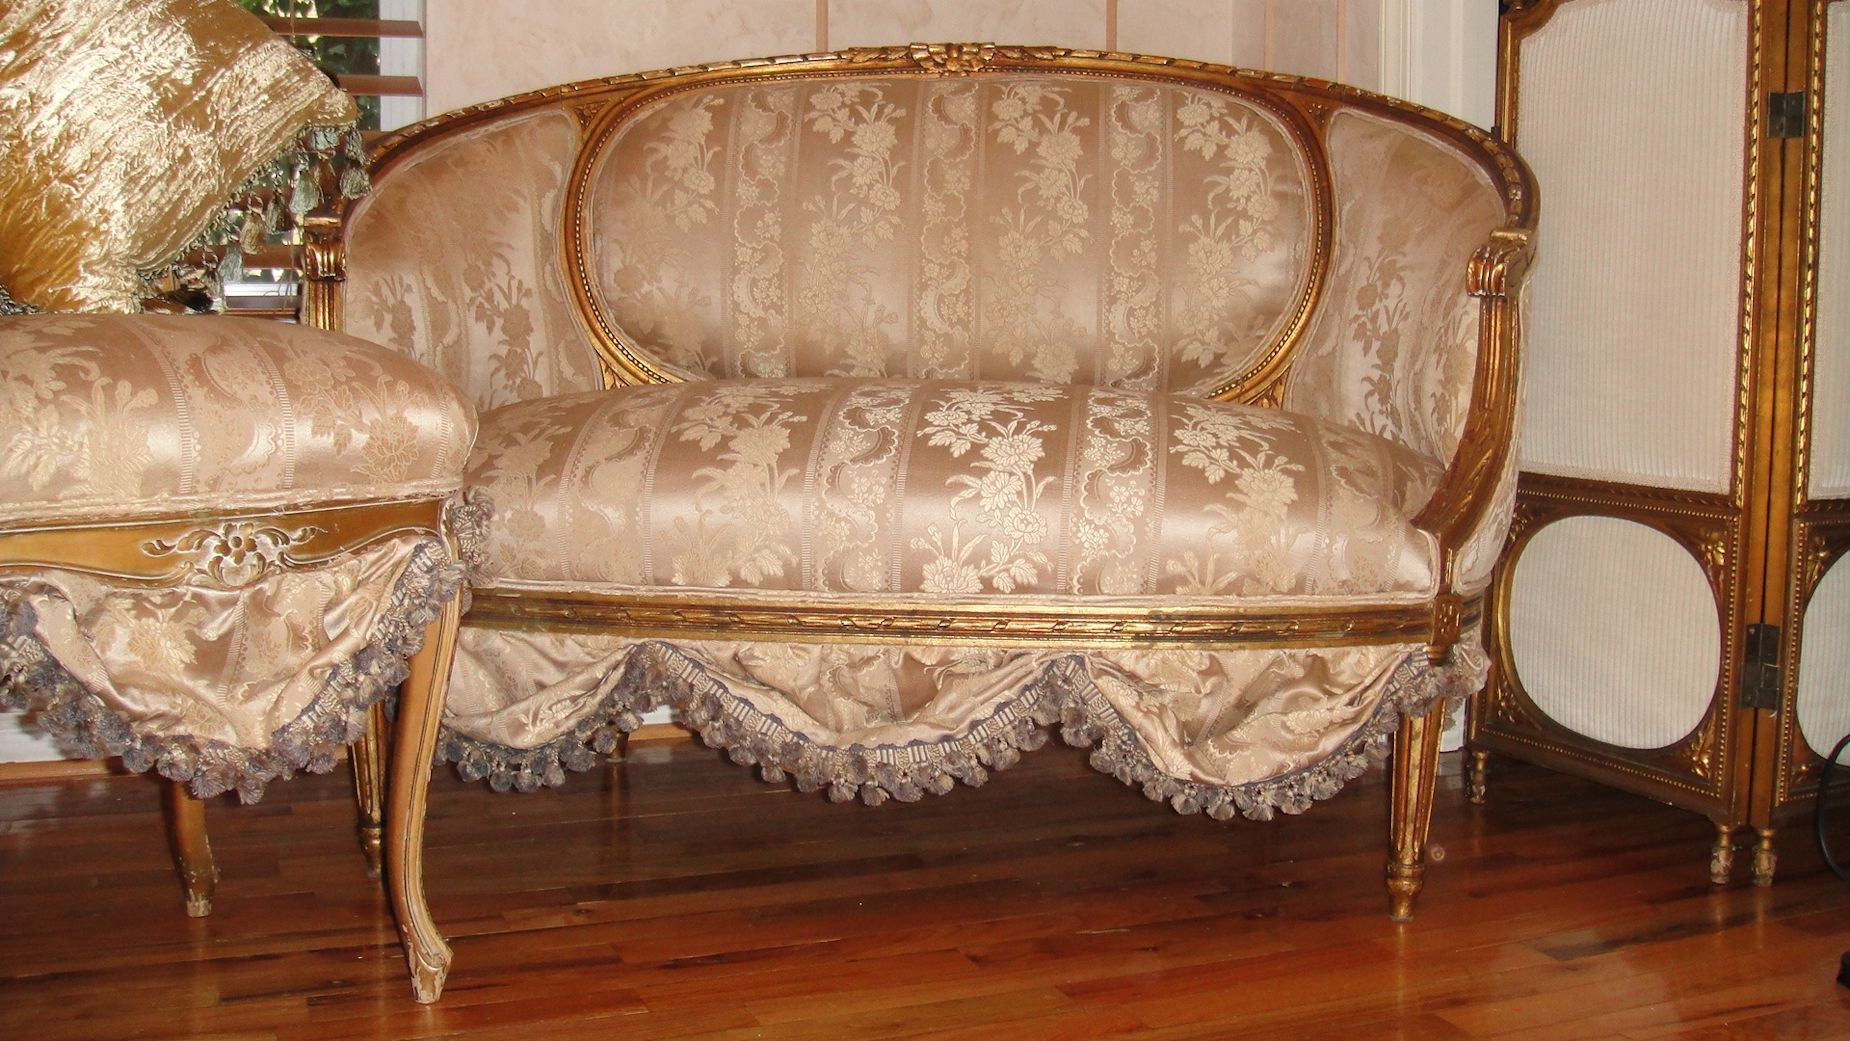 Antike Sofas & Loveseats French Antique Settee Sofa Loveseat Circa 1800 39s Scallops